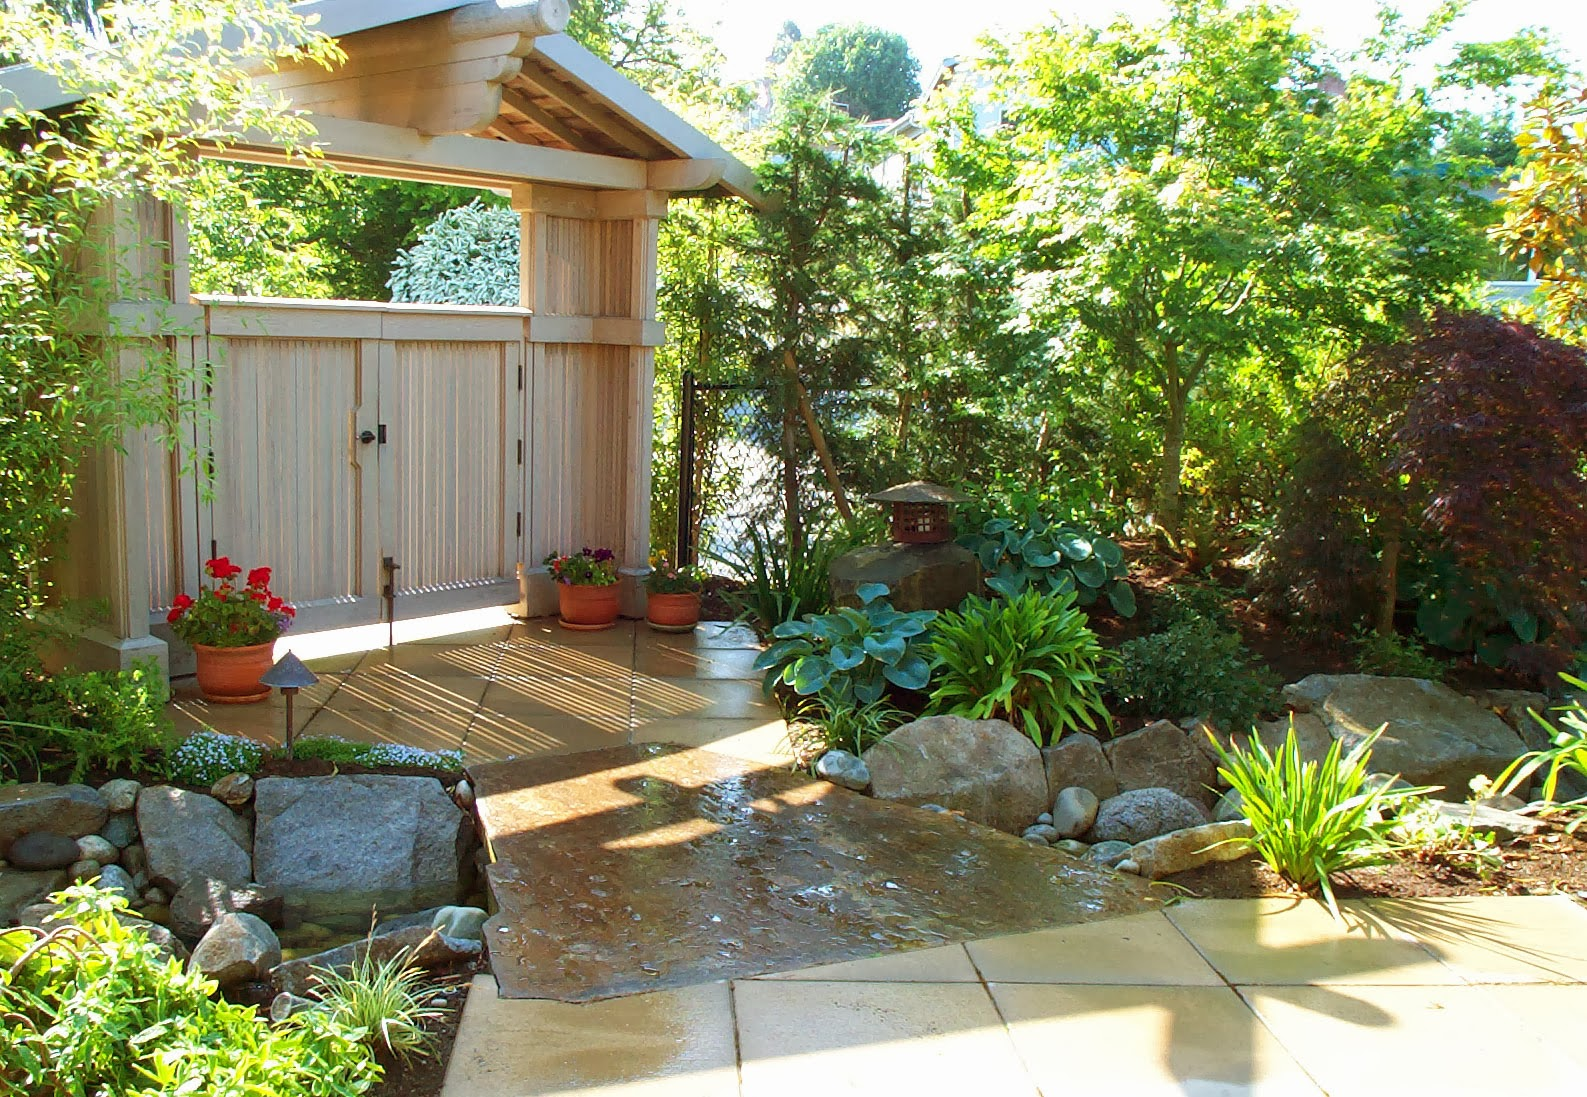 Gardening and landscaping front yard landscaping ideas for Design your backyard landscape